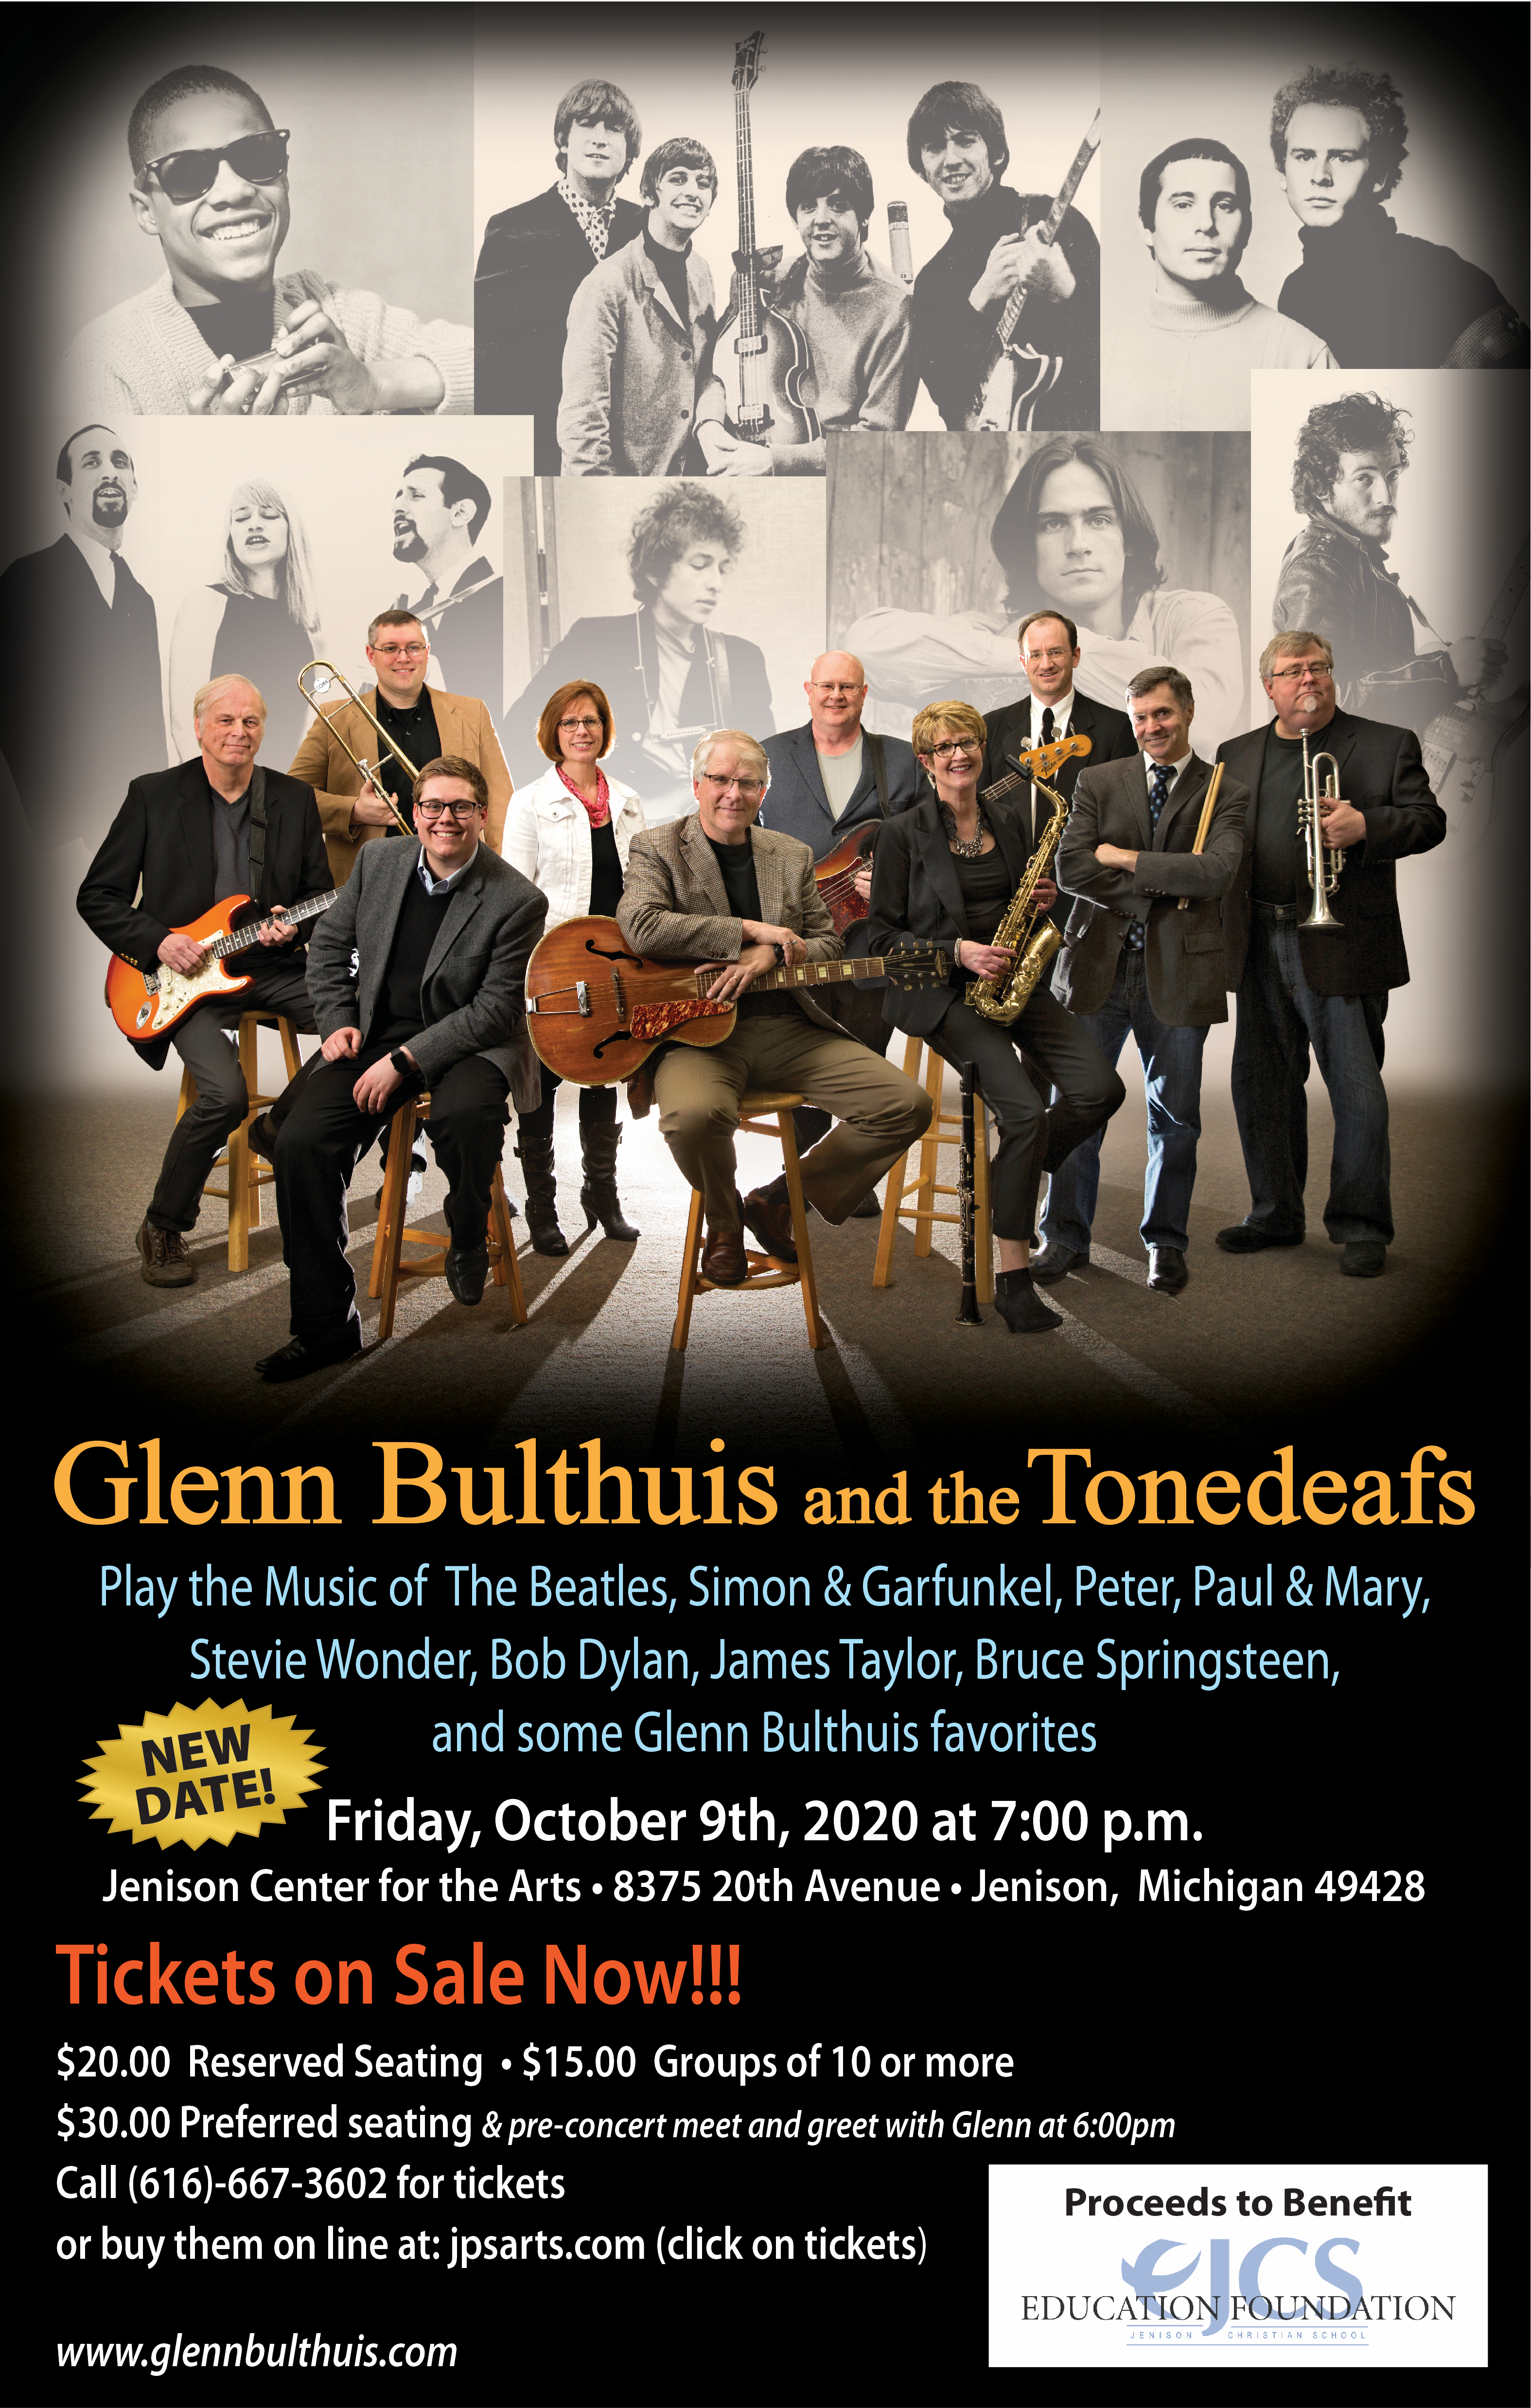 Glenn Bulthuis and the Tonedeafs